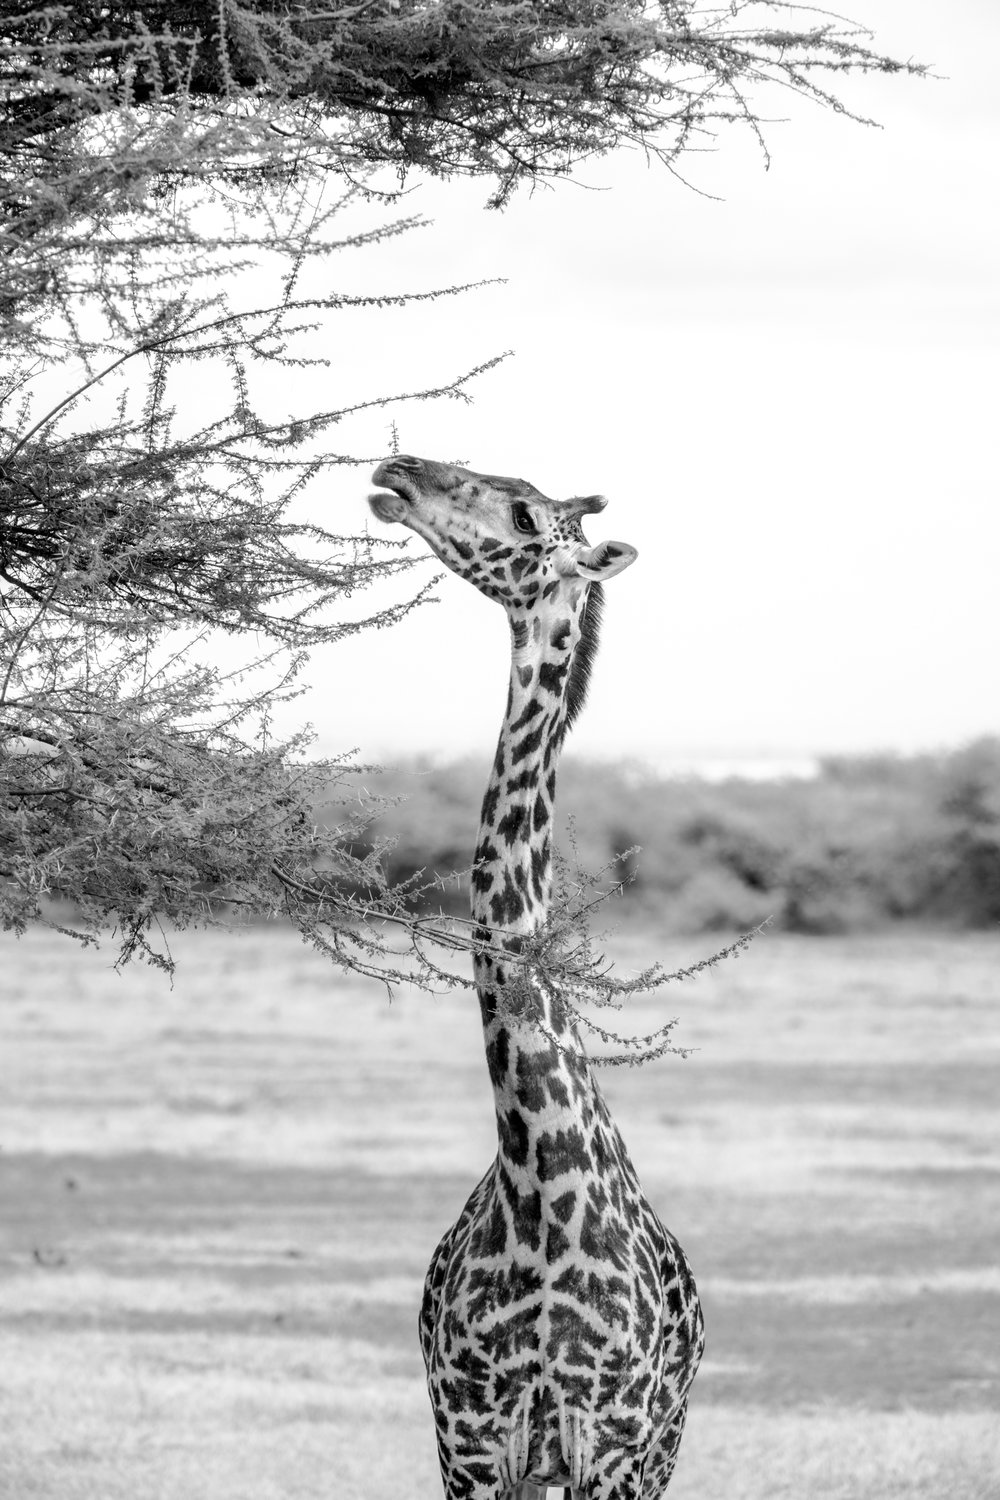 Giraffe Eating Acacia Tree.2500px.jpg